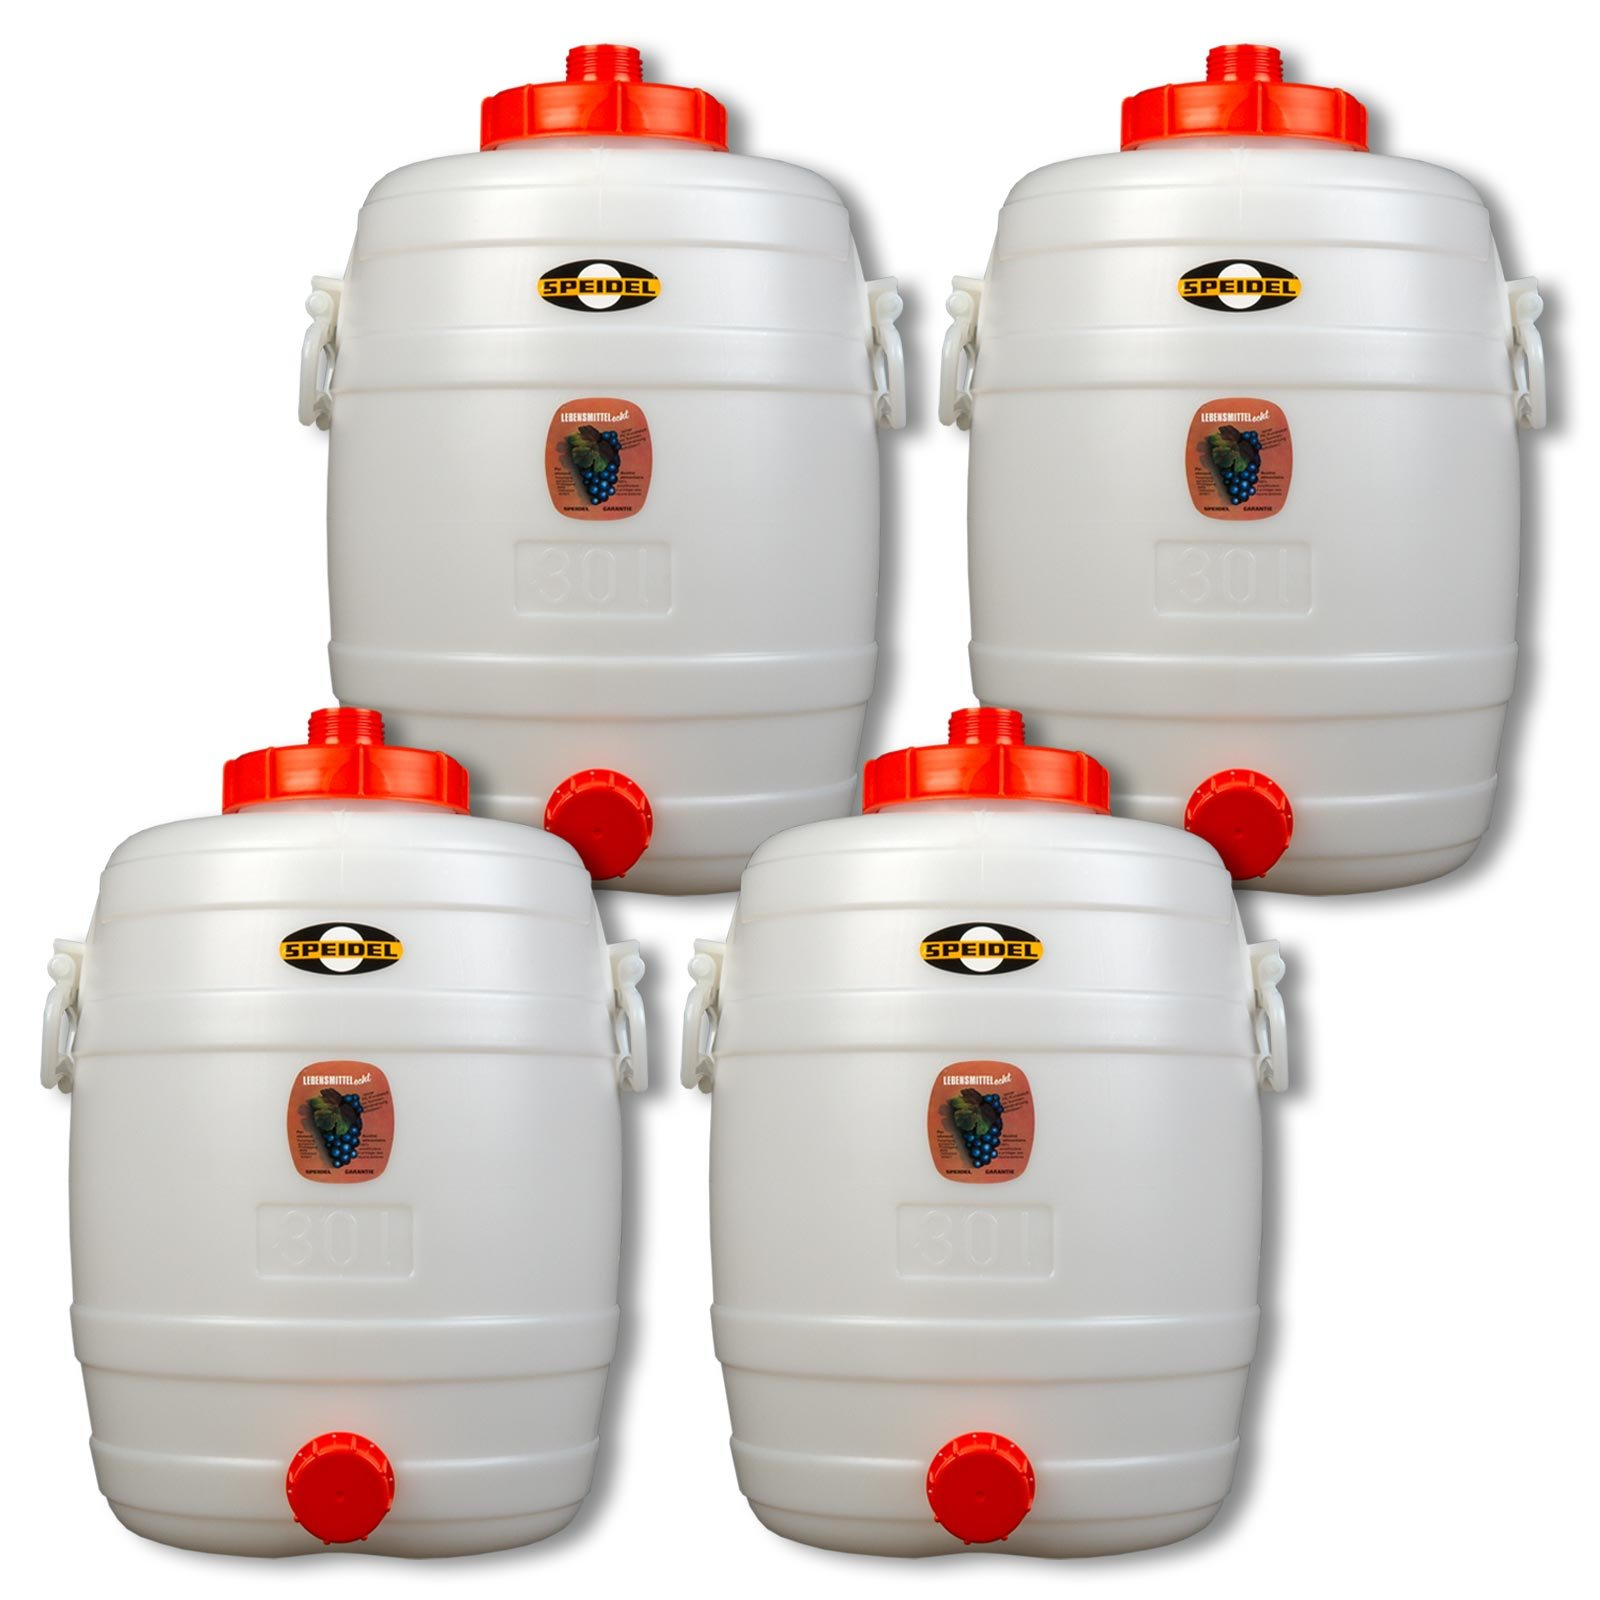 Lot of 4 Fermenter barrels SPEIDEL - 30 L round - 1 cap included (4x22132)